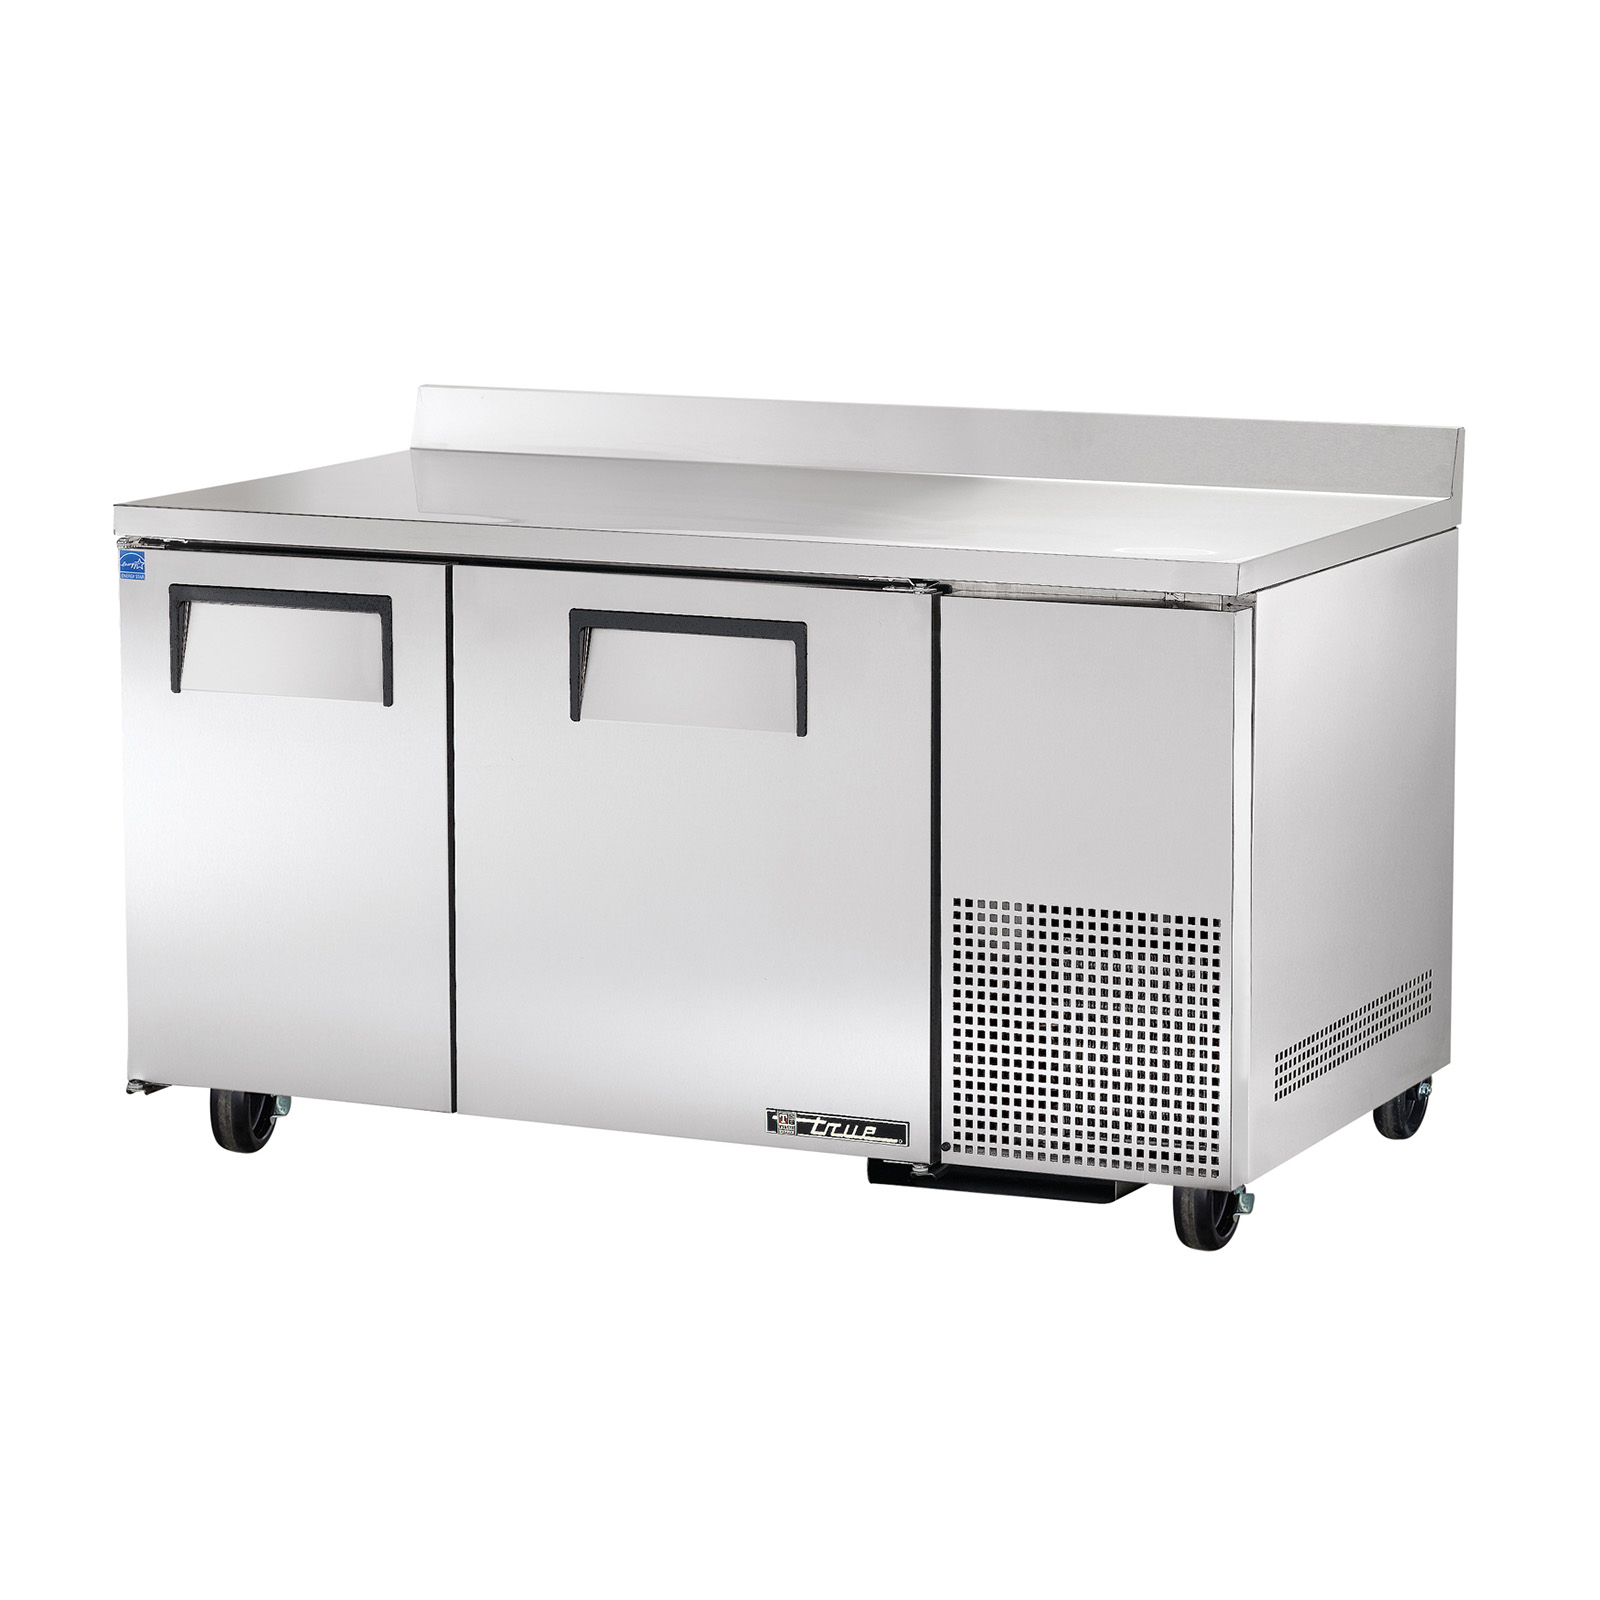 TWT-60-32 True - Deep Work Top Refrigerator two-section